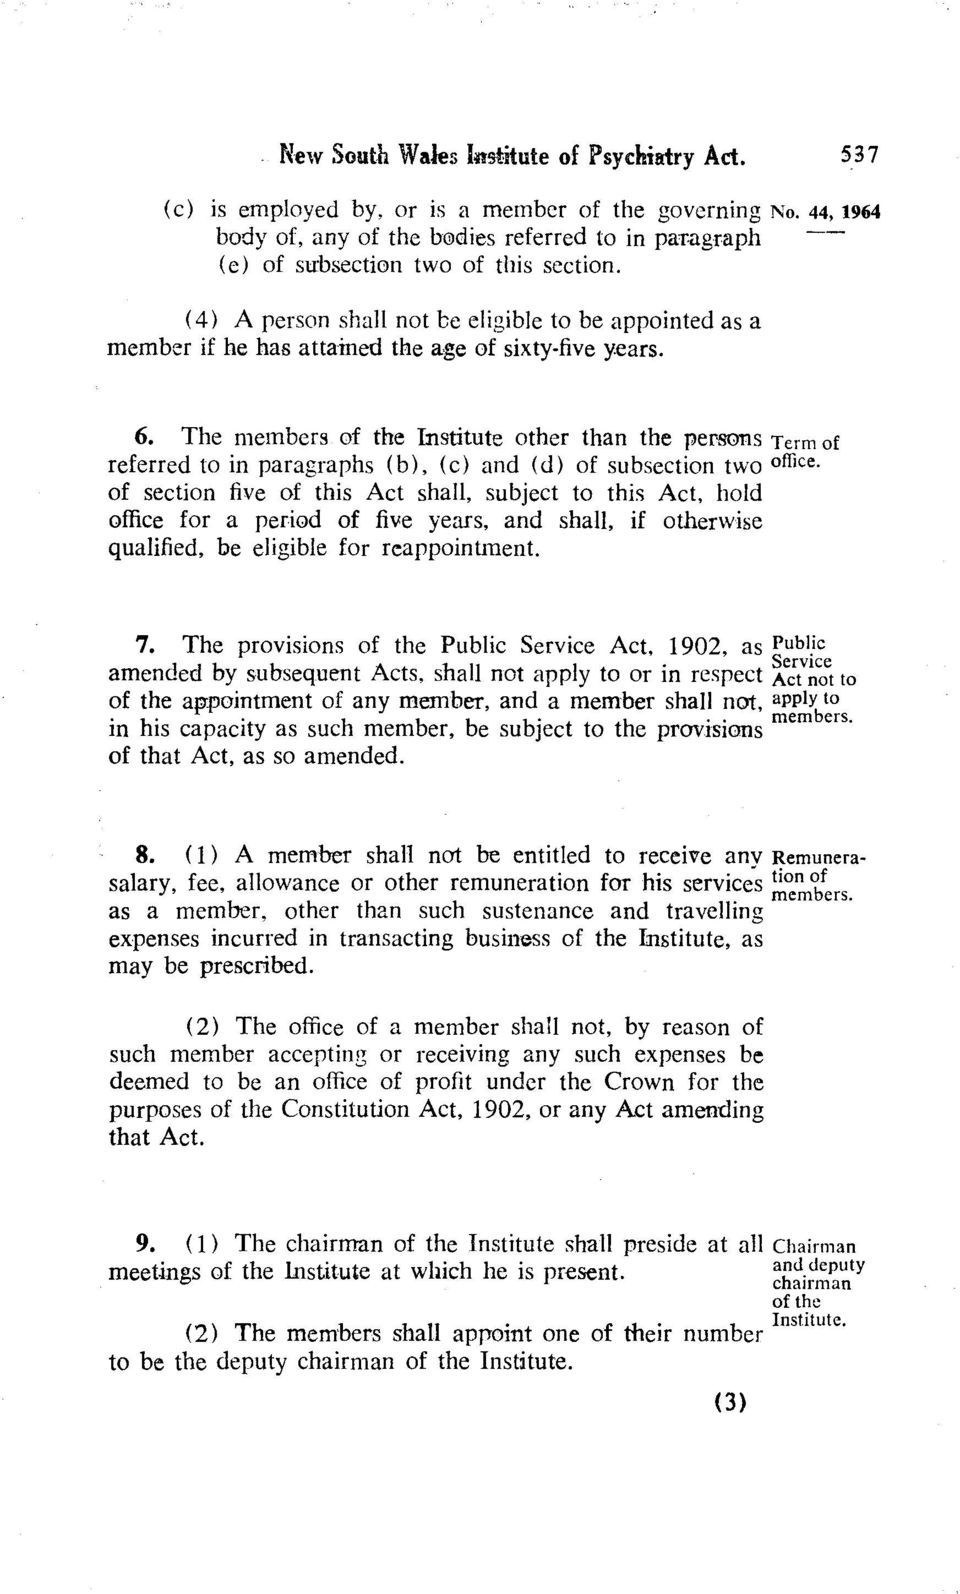 The members of the Institute other than the persons referred to in paragraphs (b), (c) and (d) of subsection two of section five of this Act shall, subject to this Act, hold office for a period of